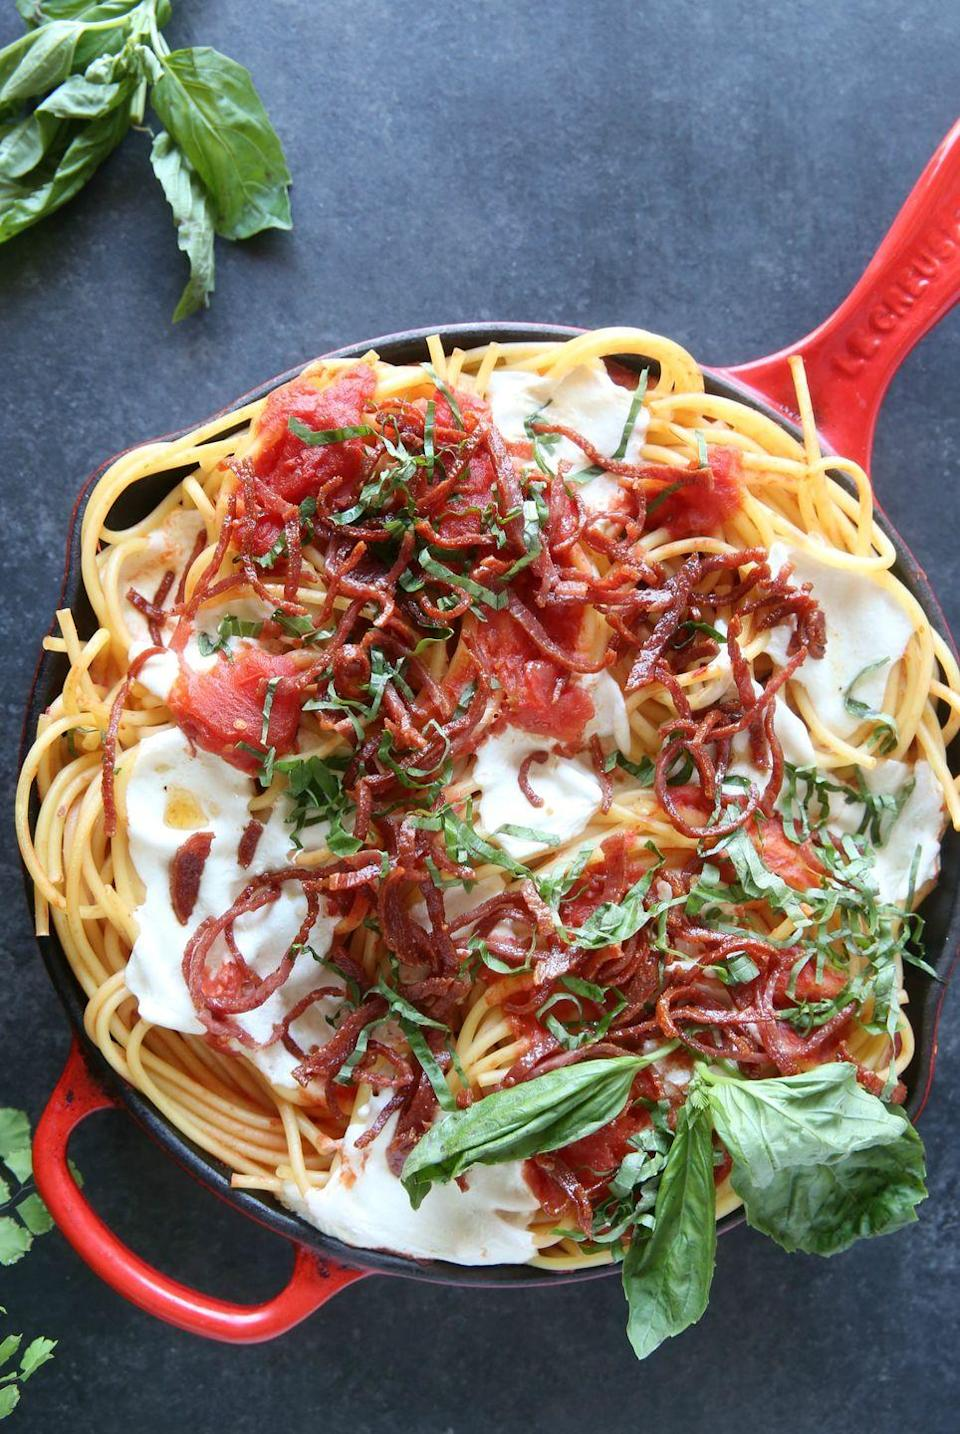 "<p>Prepare your tastebuds for pizza in pasta form.</p><p>Get the recipe from <a href=""https://www.delish.com/cooking/recipe-ideas/recipes/a47484/bucatini-with-crispy-salami-and-tomatoes-recipe/"" rel=""nofollow noopener"" target=""_blank"" data-ylk=""slk:Delish"" class=""link rapid-noclick-resp"">Delish</a>.</p>"